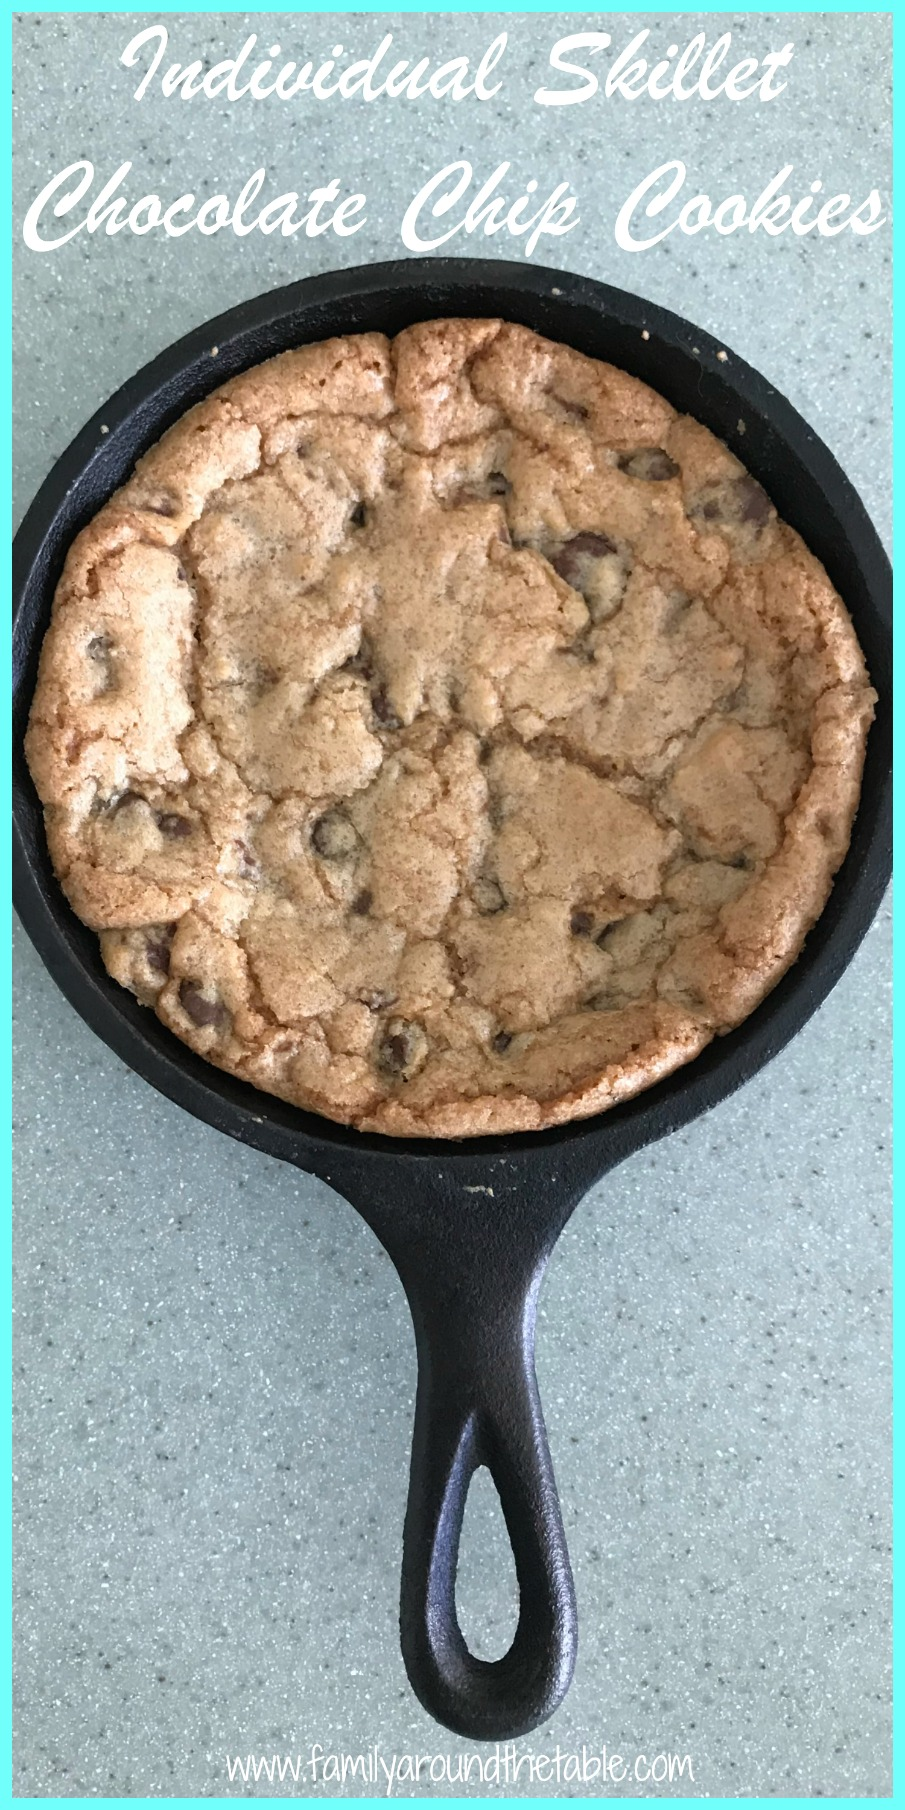 Individual skillet chocolate chip cookies are a fun dessert for family and friends.